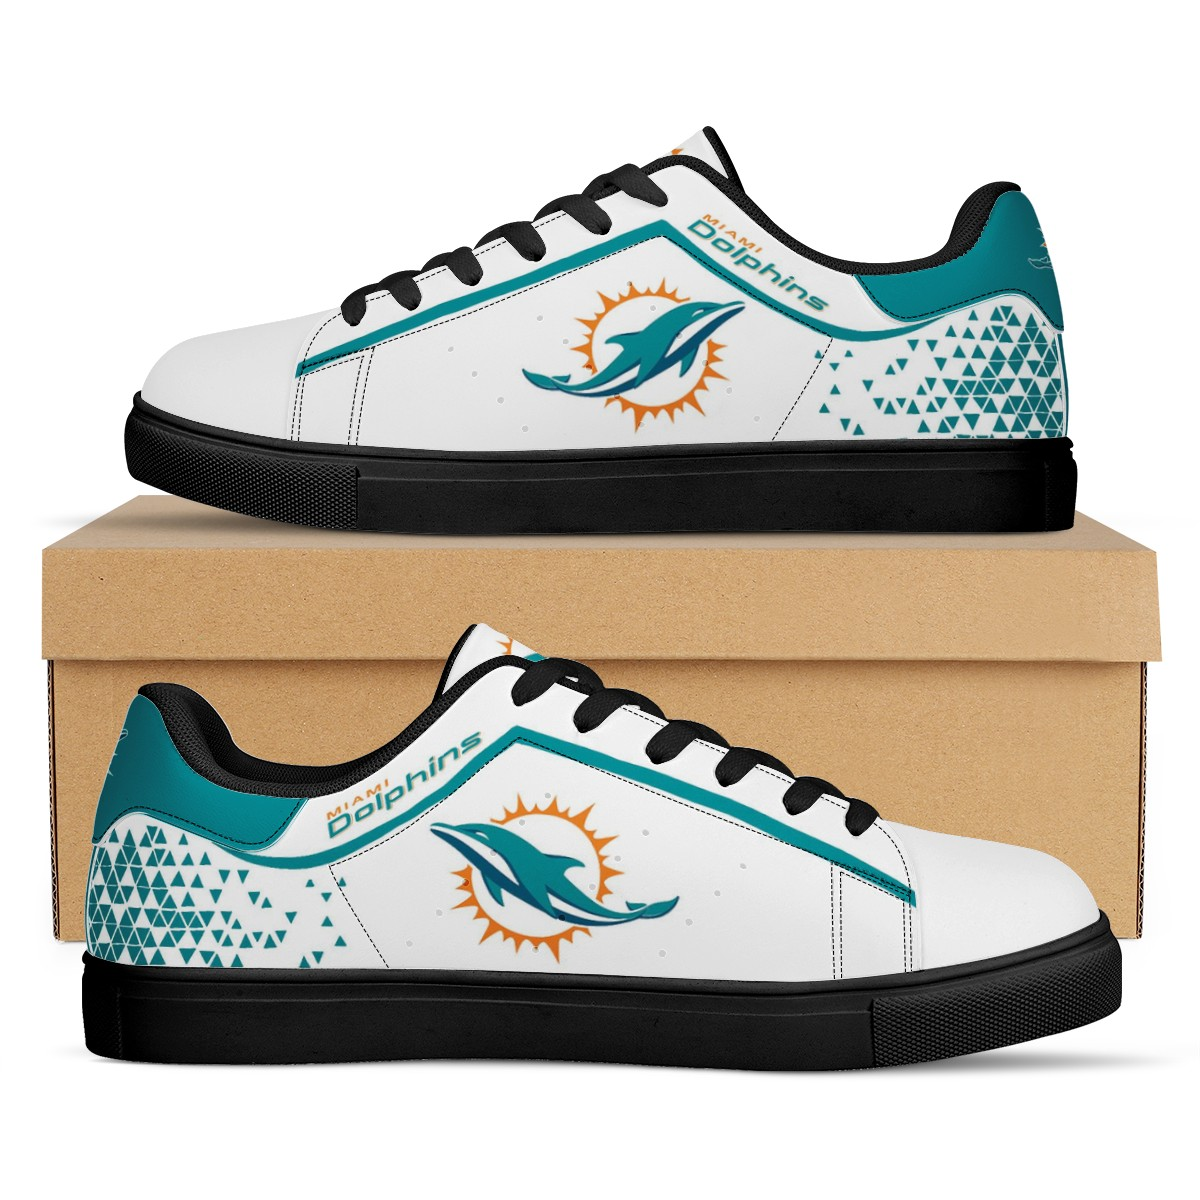 Men's Miami Dolphins Low Top Leather Sneakers 001